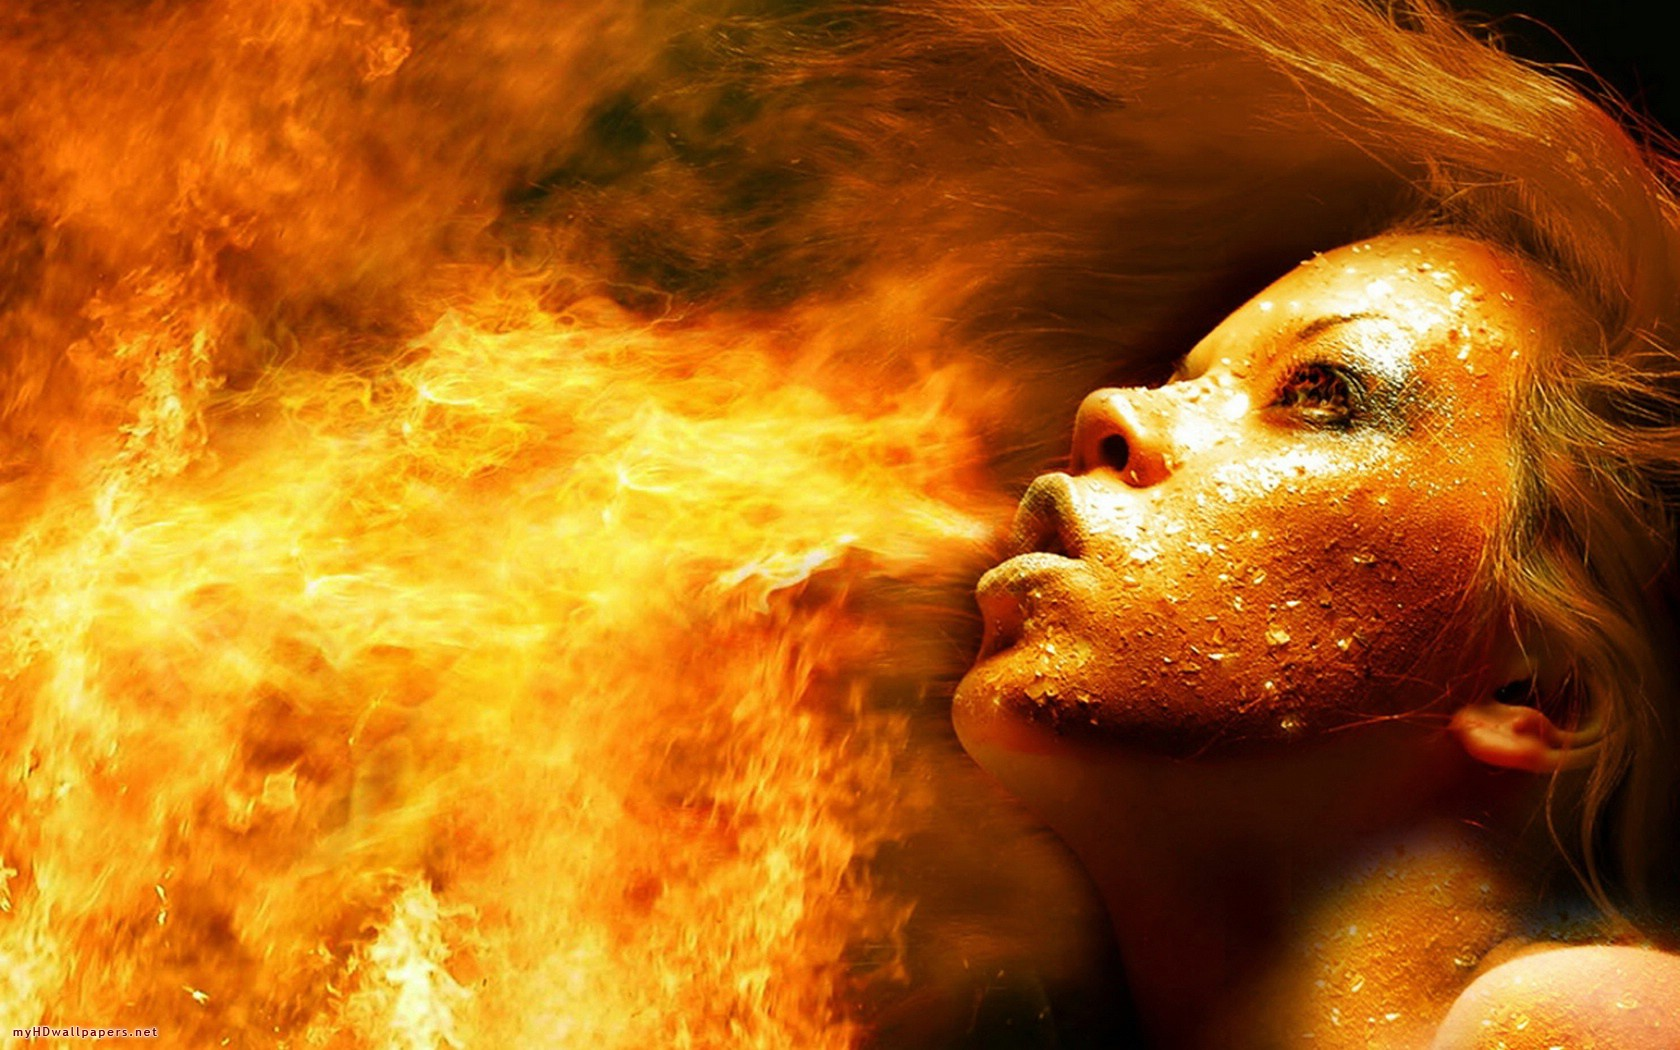 Fire girl - Free Desktop Wallpaper, HD Wallpapers Download and New 3D ...